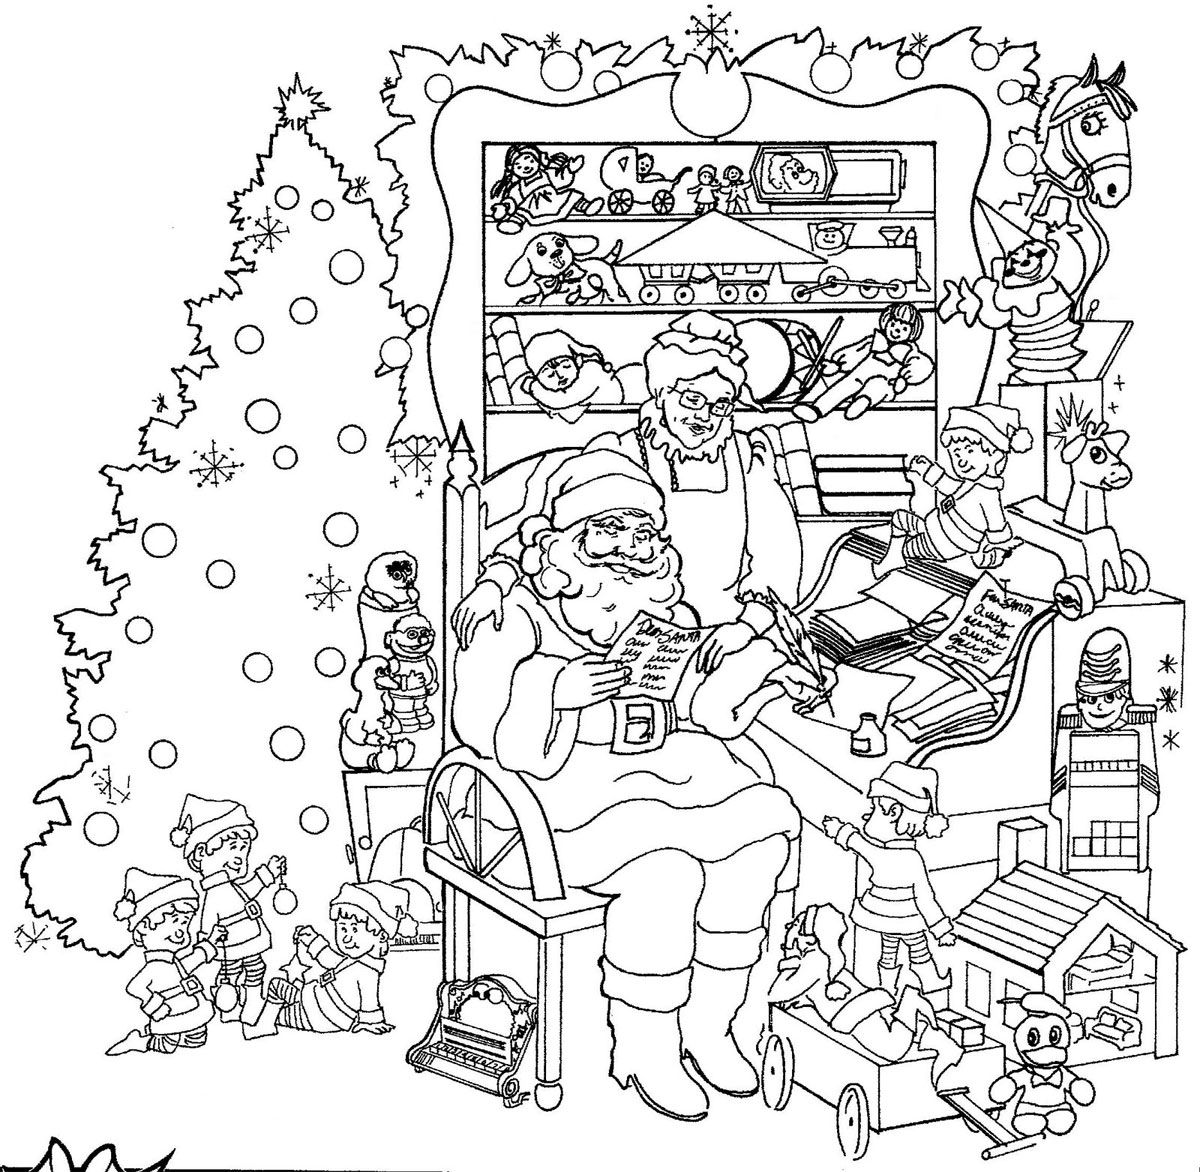 Free online holiday coloring pages - Santa Christmas Picture Coloring 4 Games The Sun Games Site Flash Games Online Free